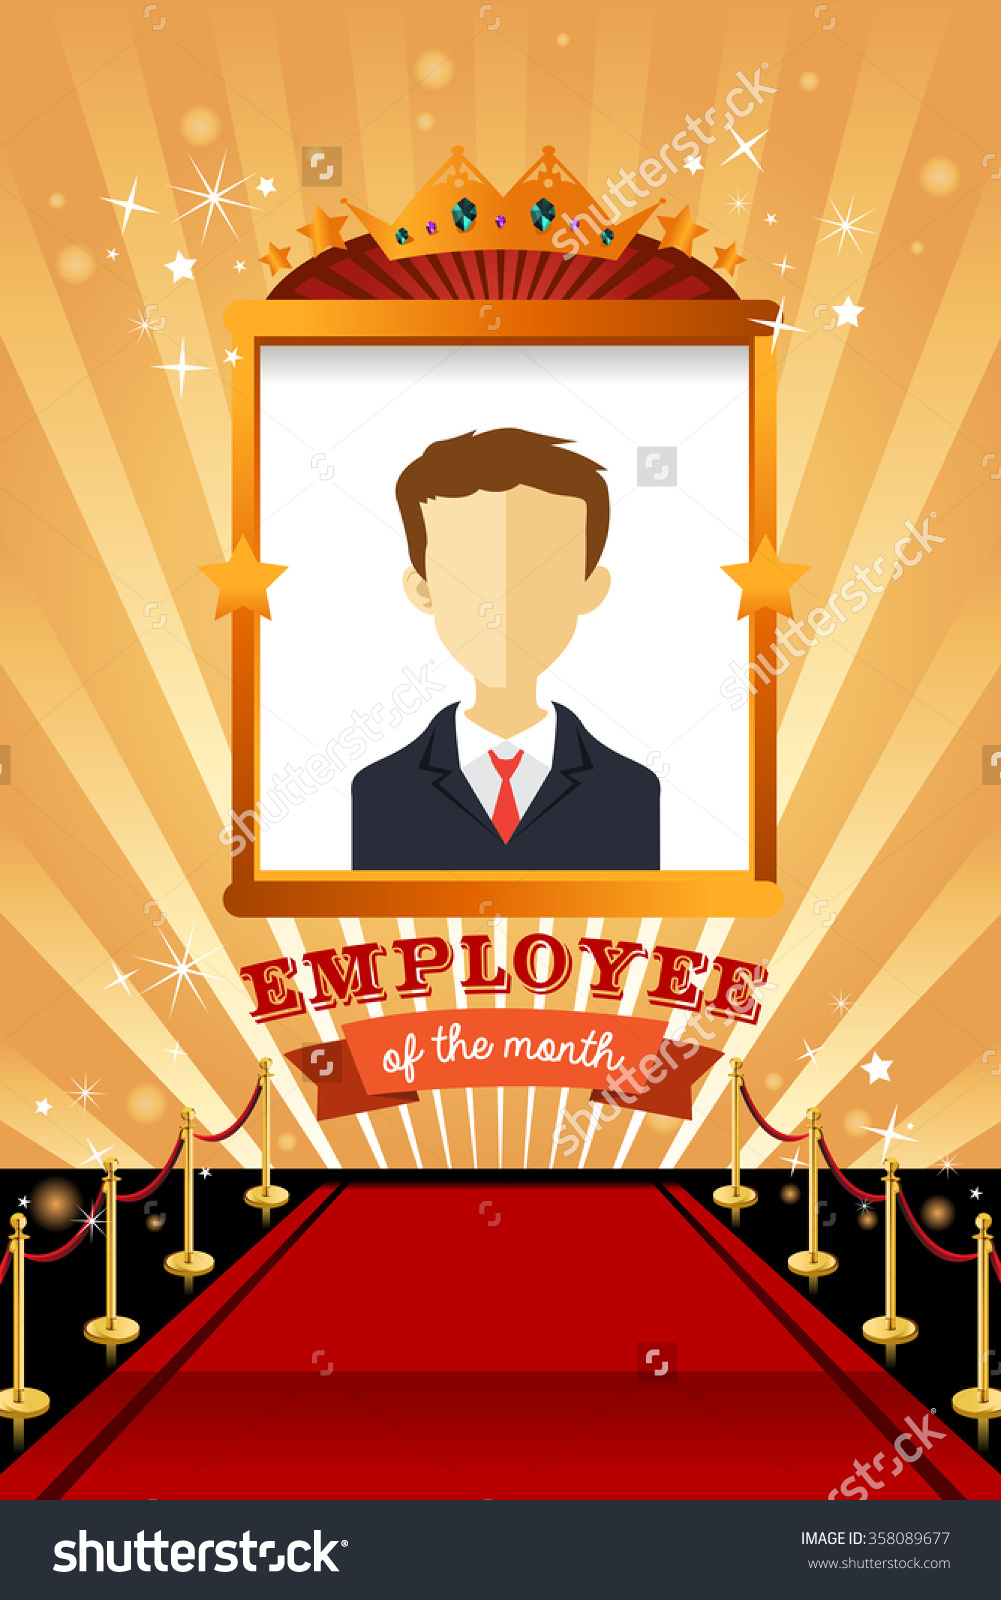 Vector Illustration Employee Month Poster Frame Stock Vector ... image royalty free library